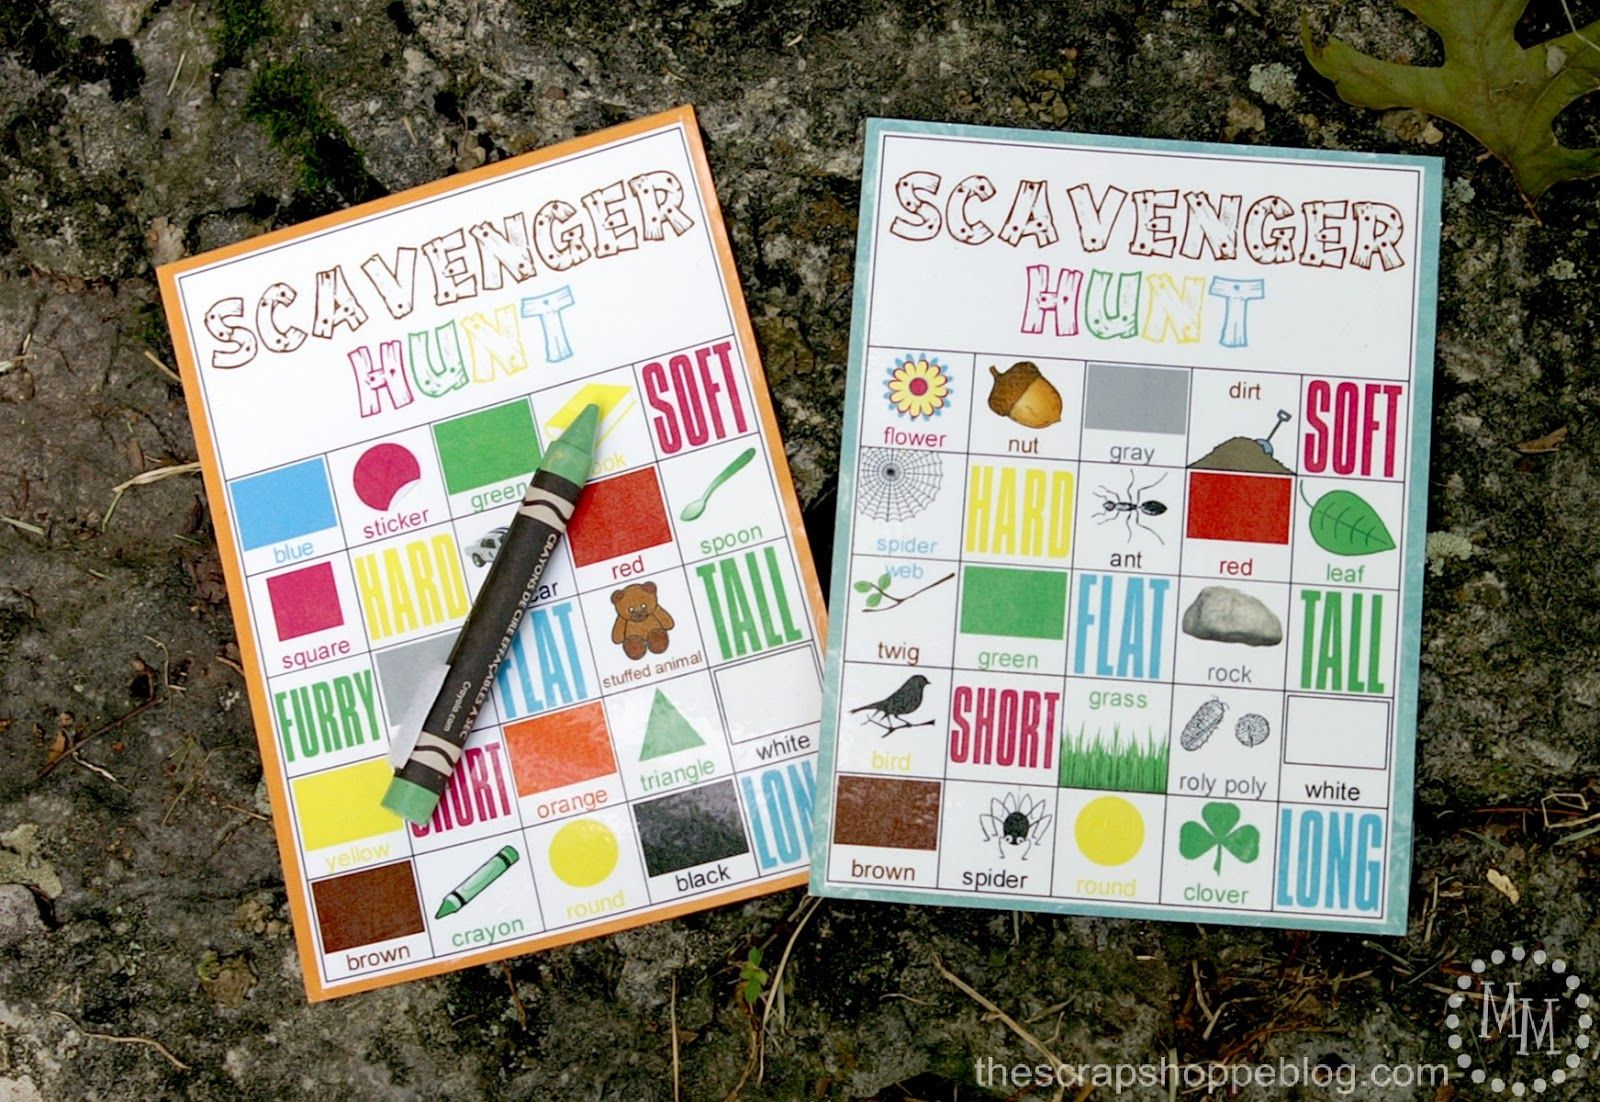 Indoor Camping 101: Here's a fun printable from @Michele Morales {The Scrap Shoppe} that includes both an indoor and outdoor nature scavenger hunt activity!